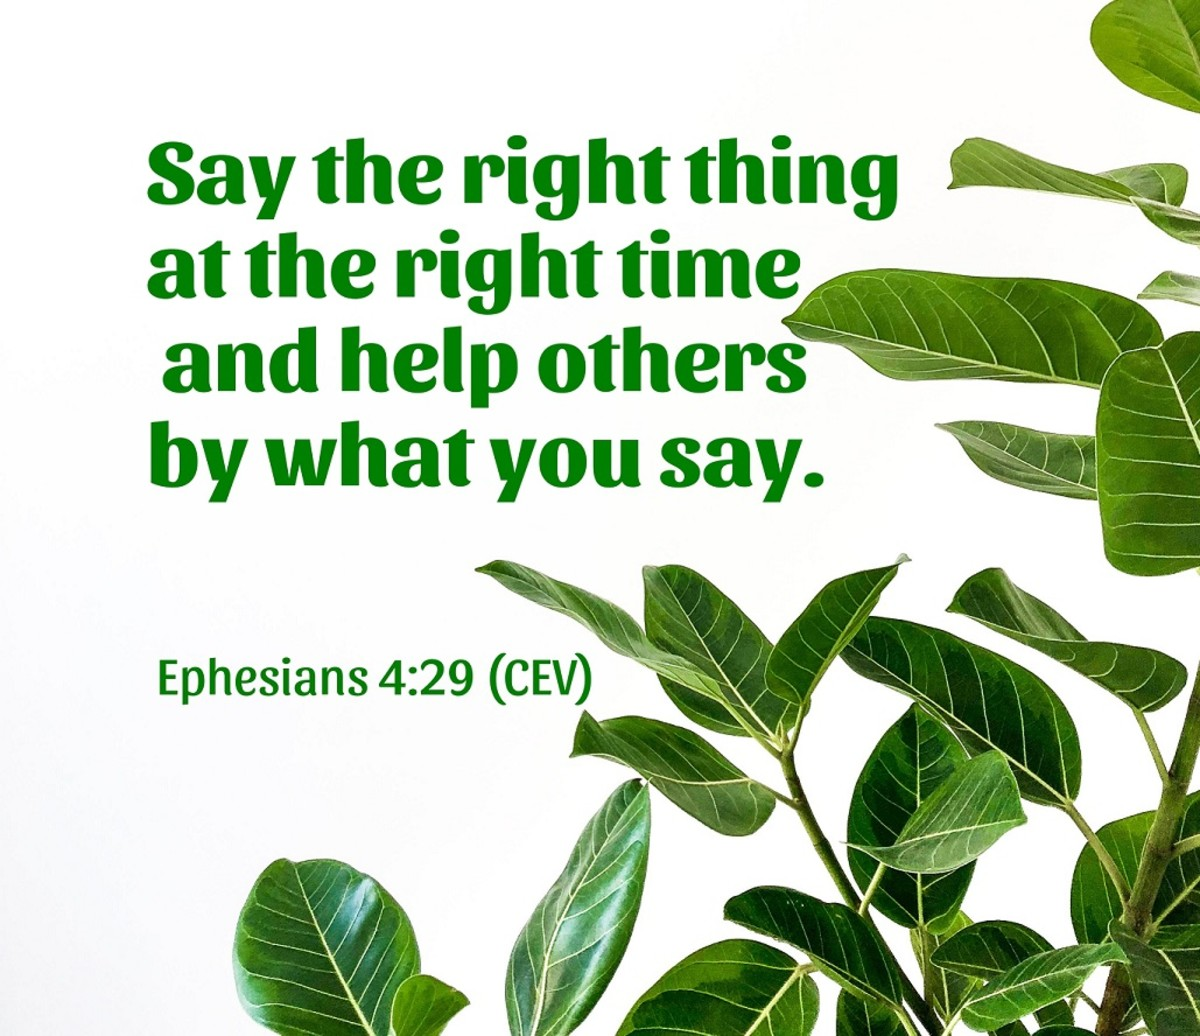 Say the right thing at the right time and help others by what you say.